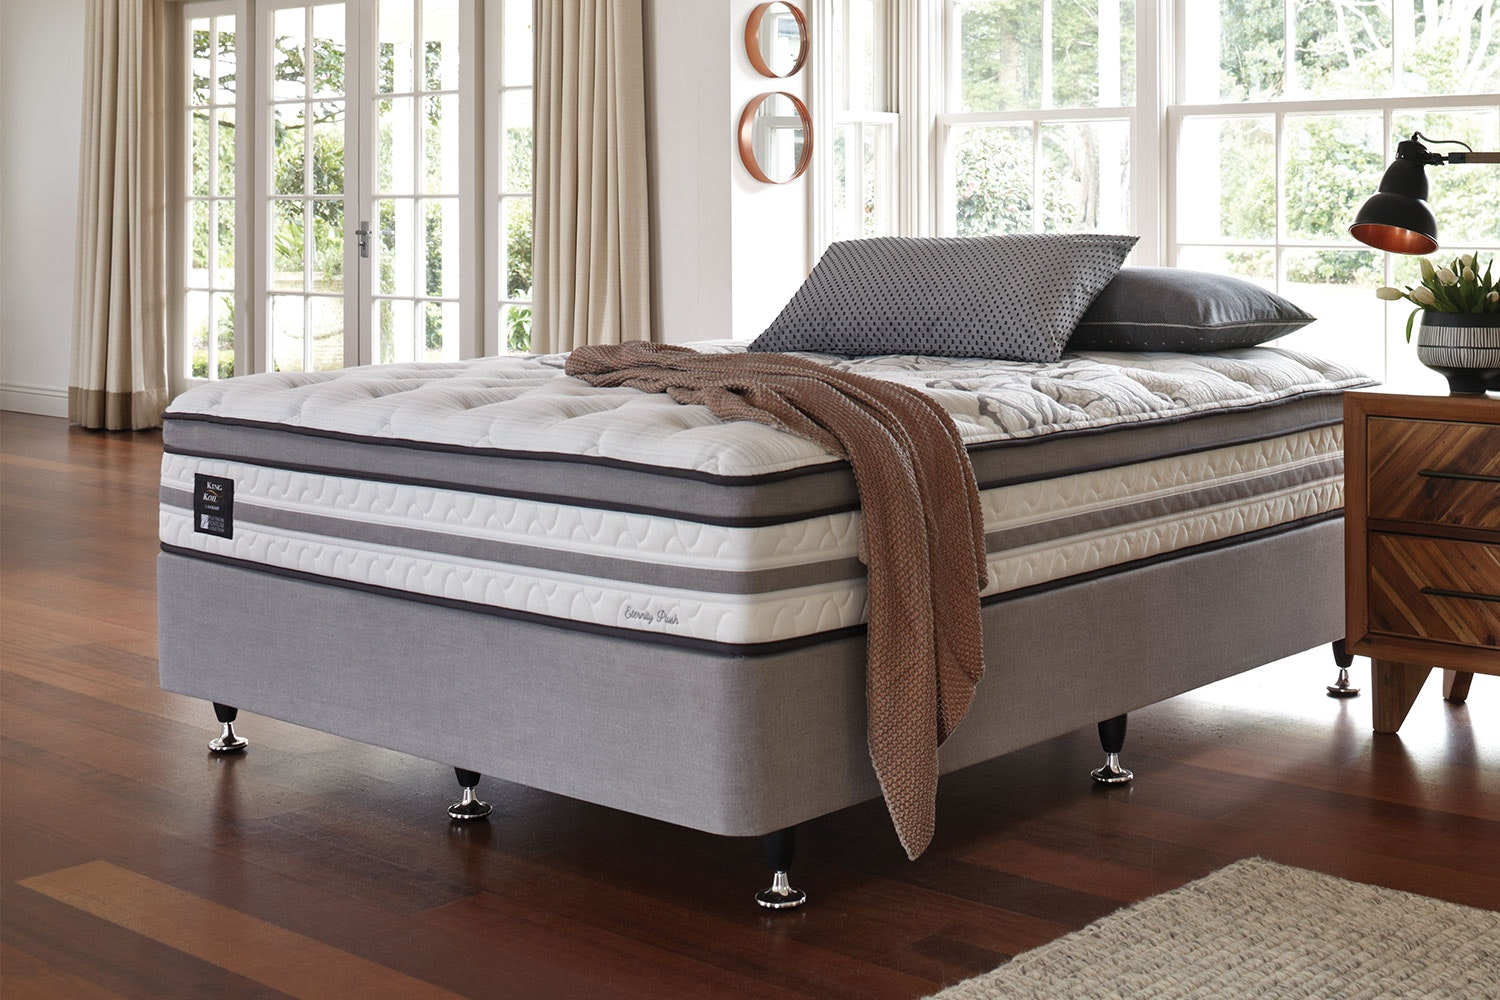 Eternity Plush Queen Bed by King Koil